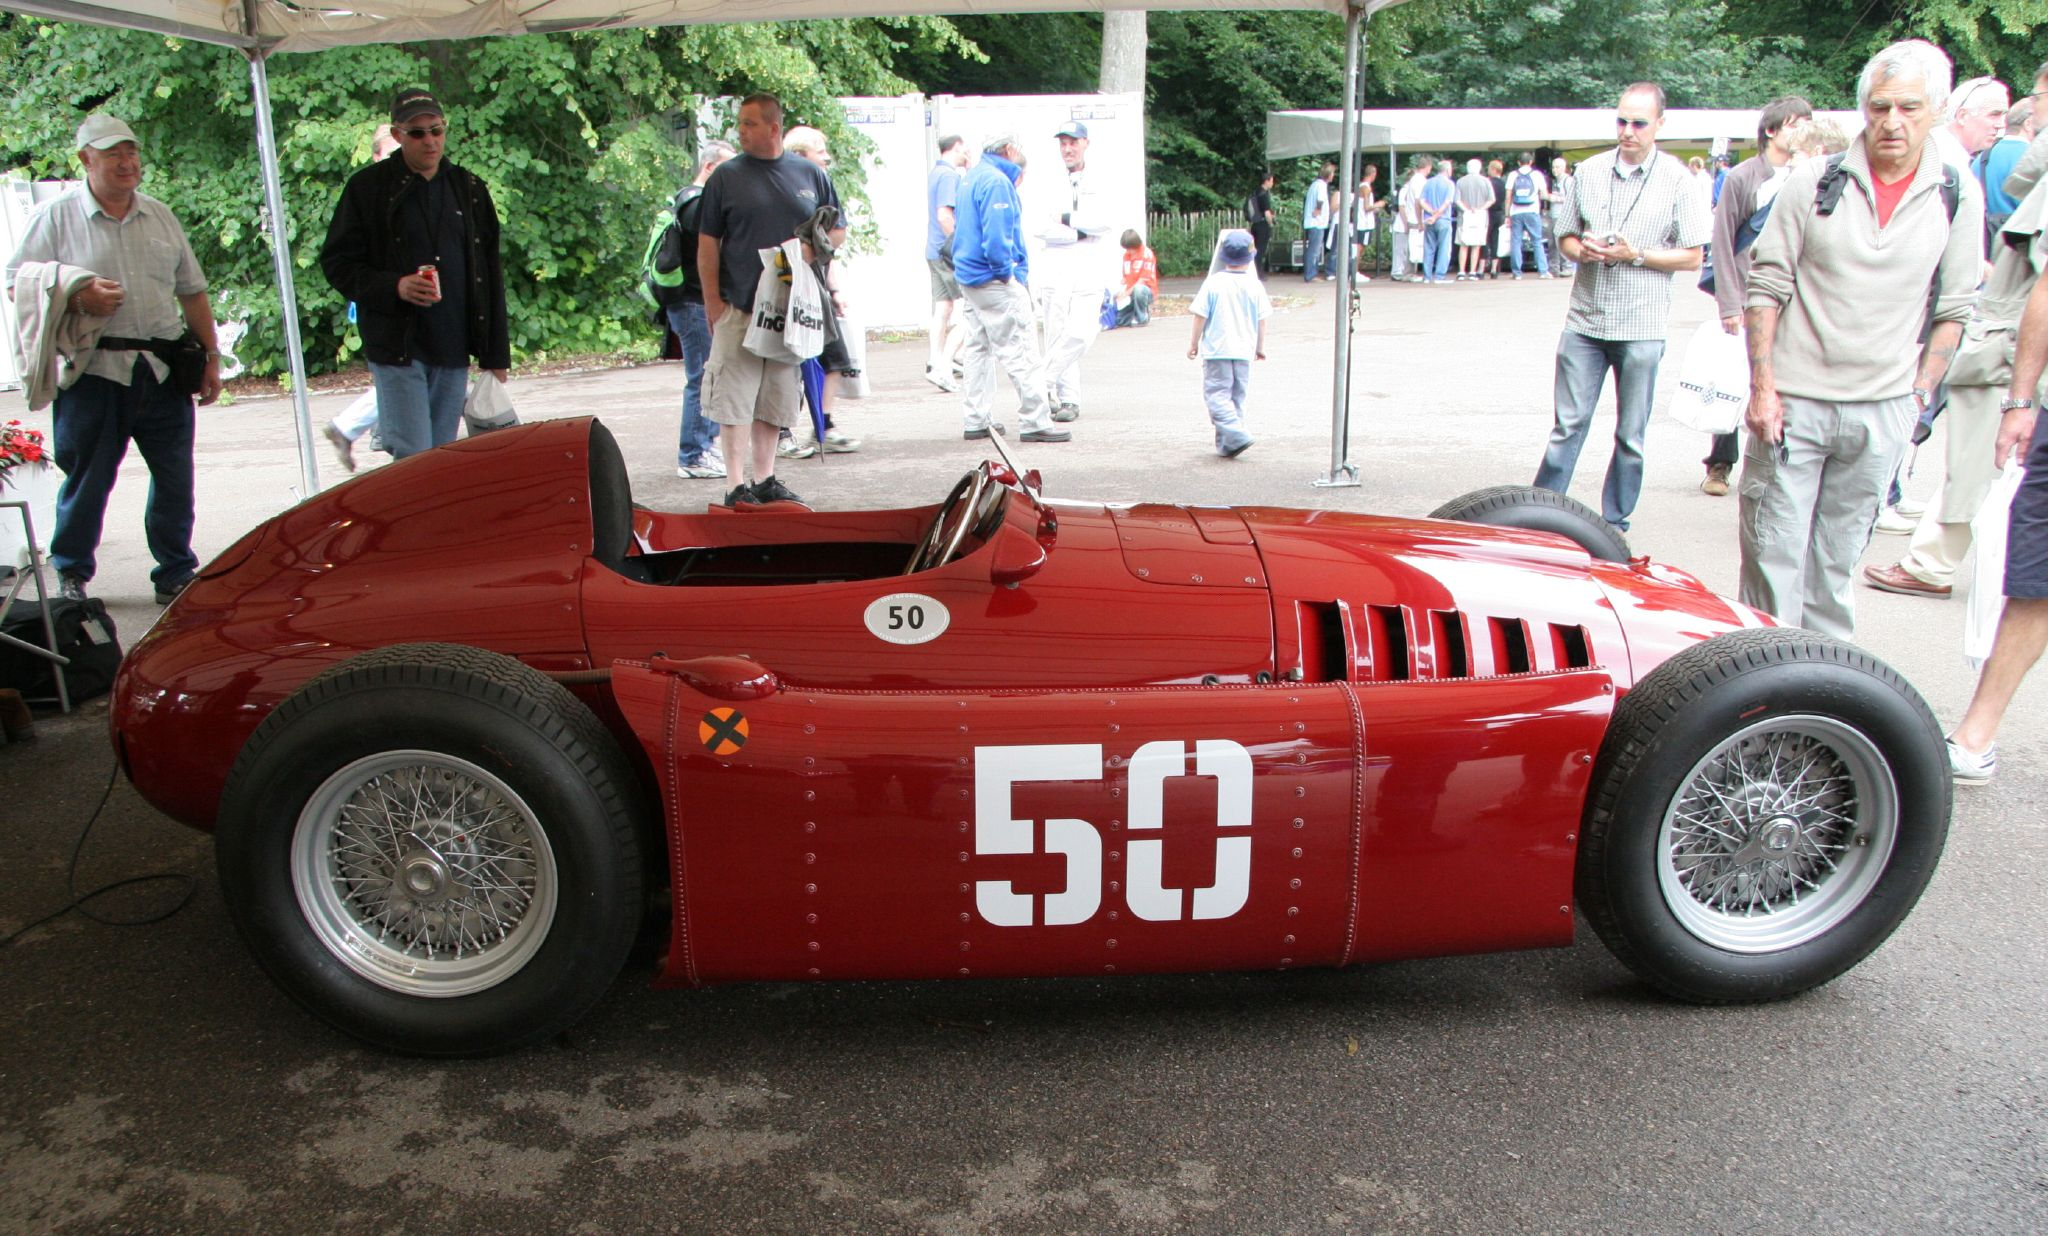 http://upload.wikimedia.org/wikipedia/commons/6/66/1954-type_Lancia_D50A_616298256.jpg